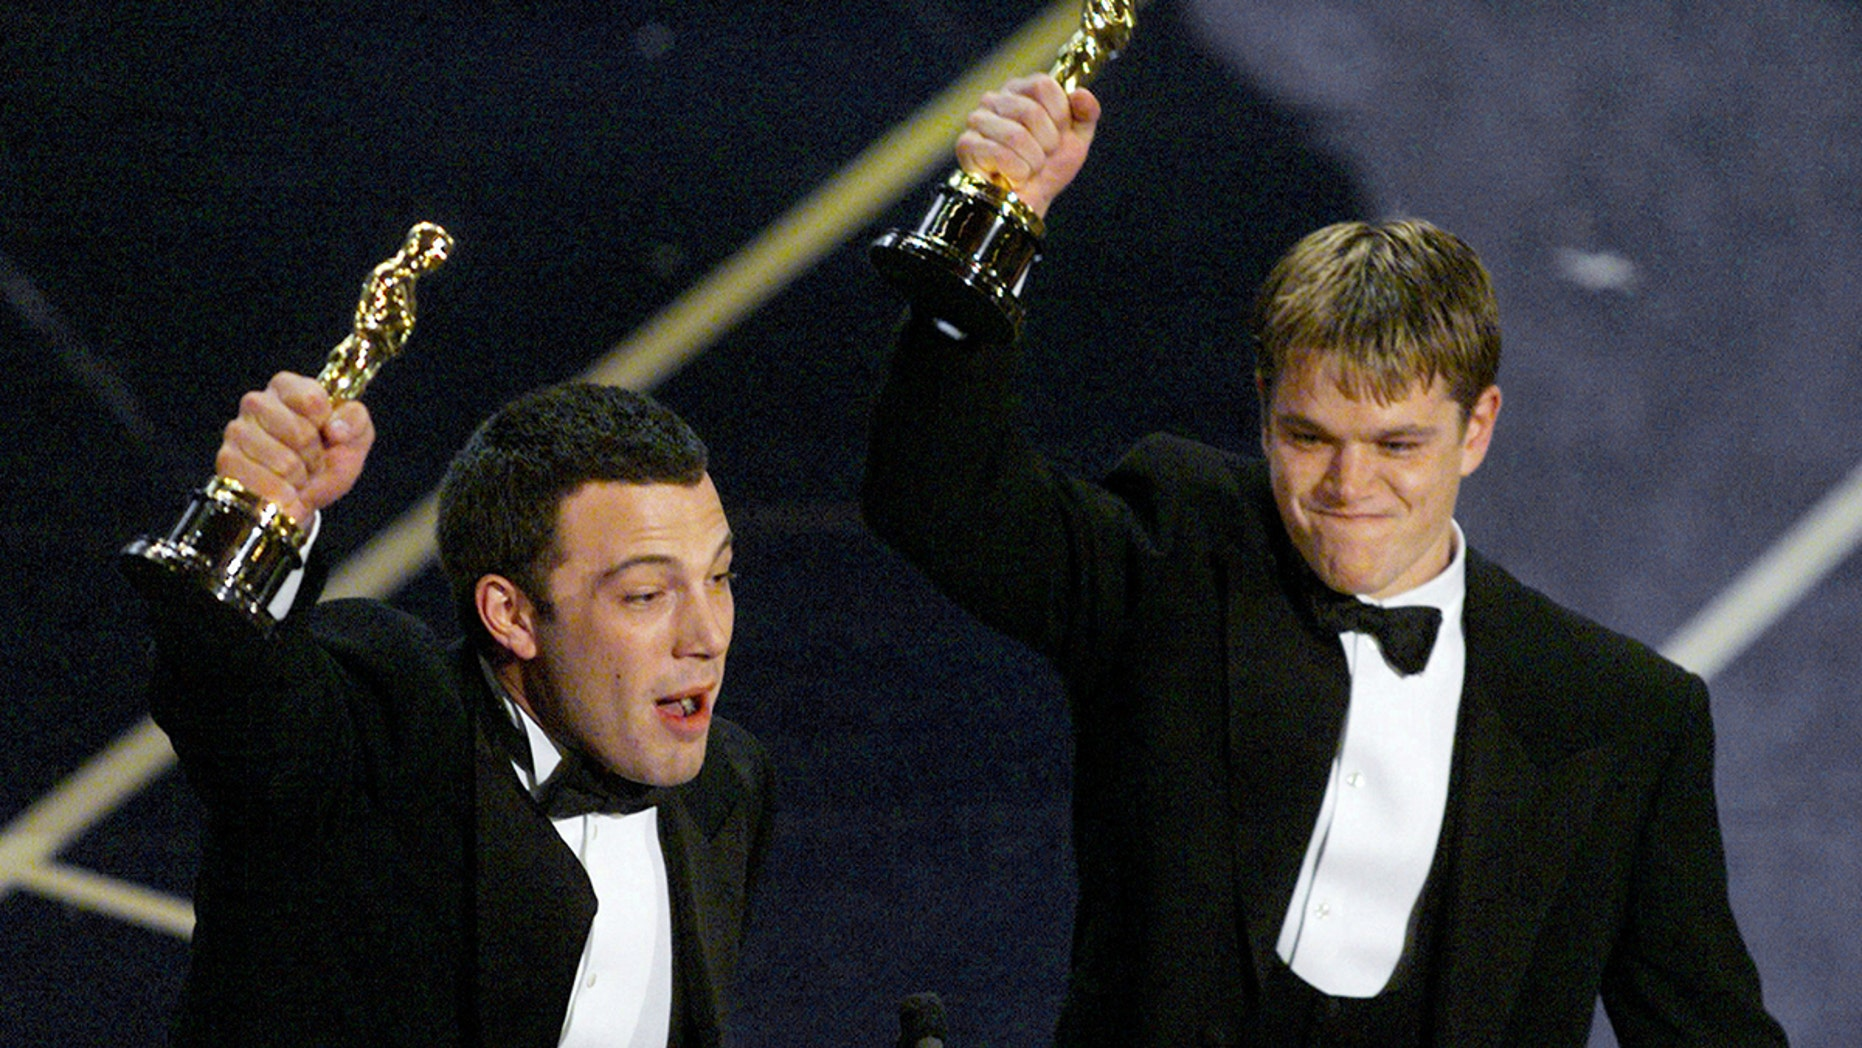 Ben Affleck (L) and Matt Damon hold up their Oscars after winning in the Original Screenplay for their movie Good Will Hunting, March 23.**DIGITAL IMAGE** - PBEAHUMAOAV